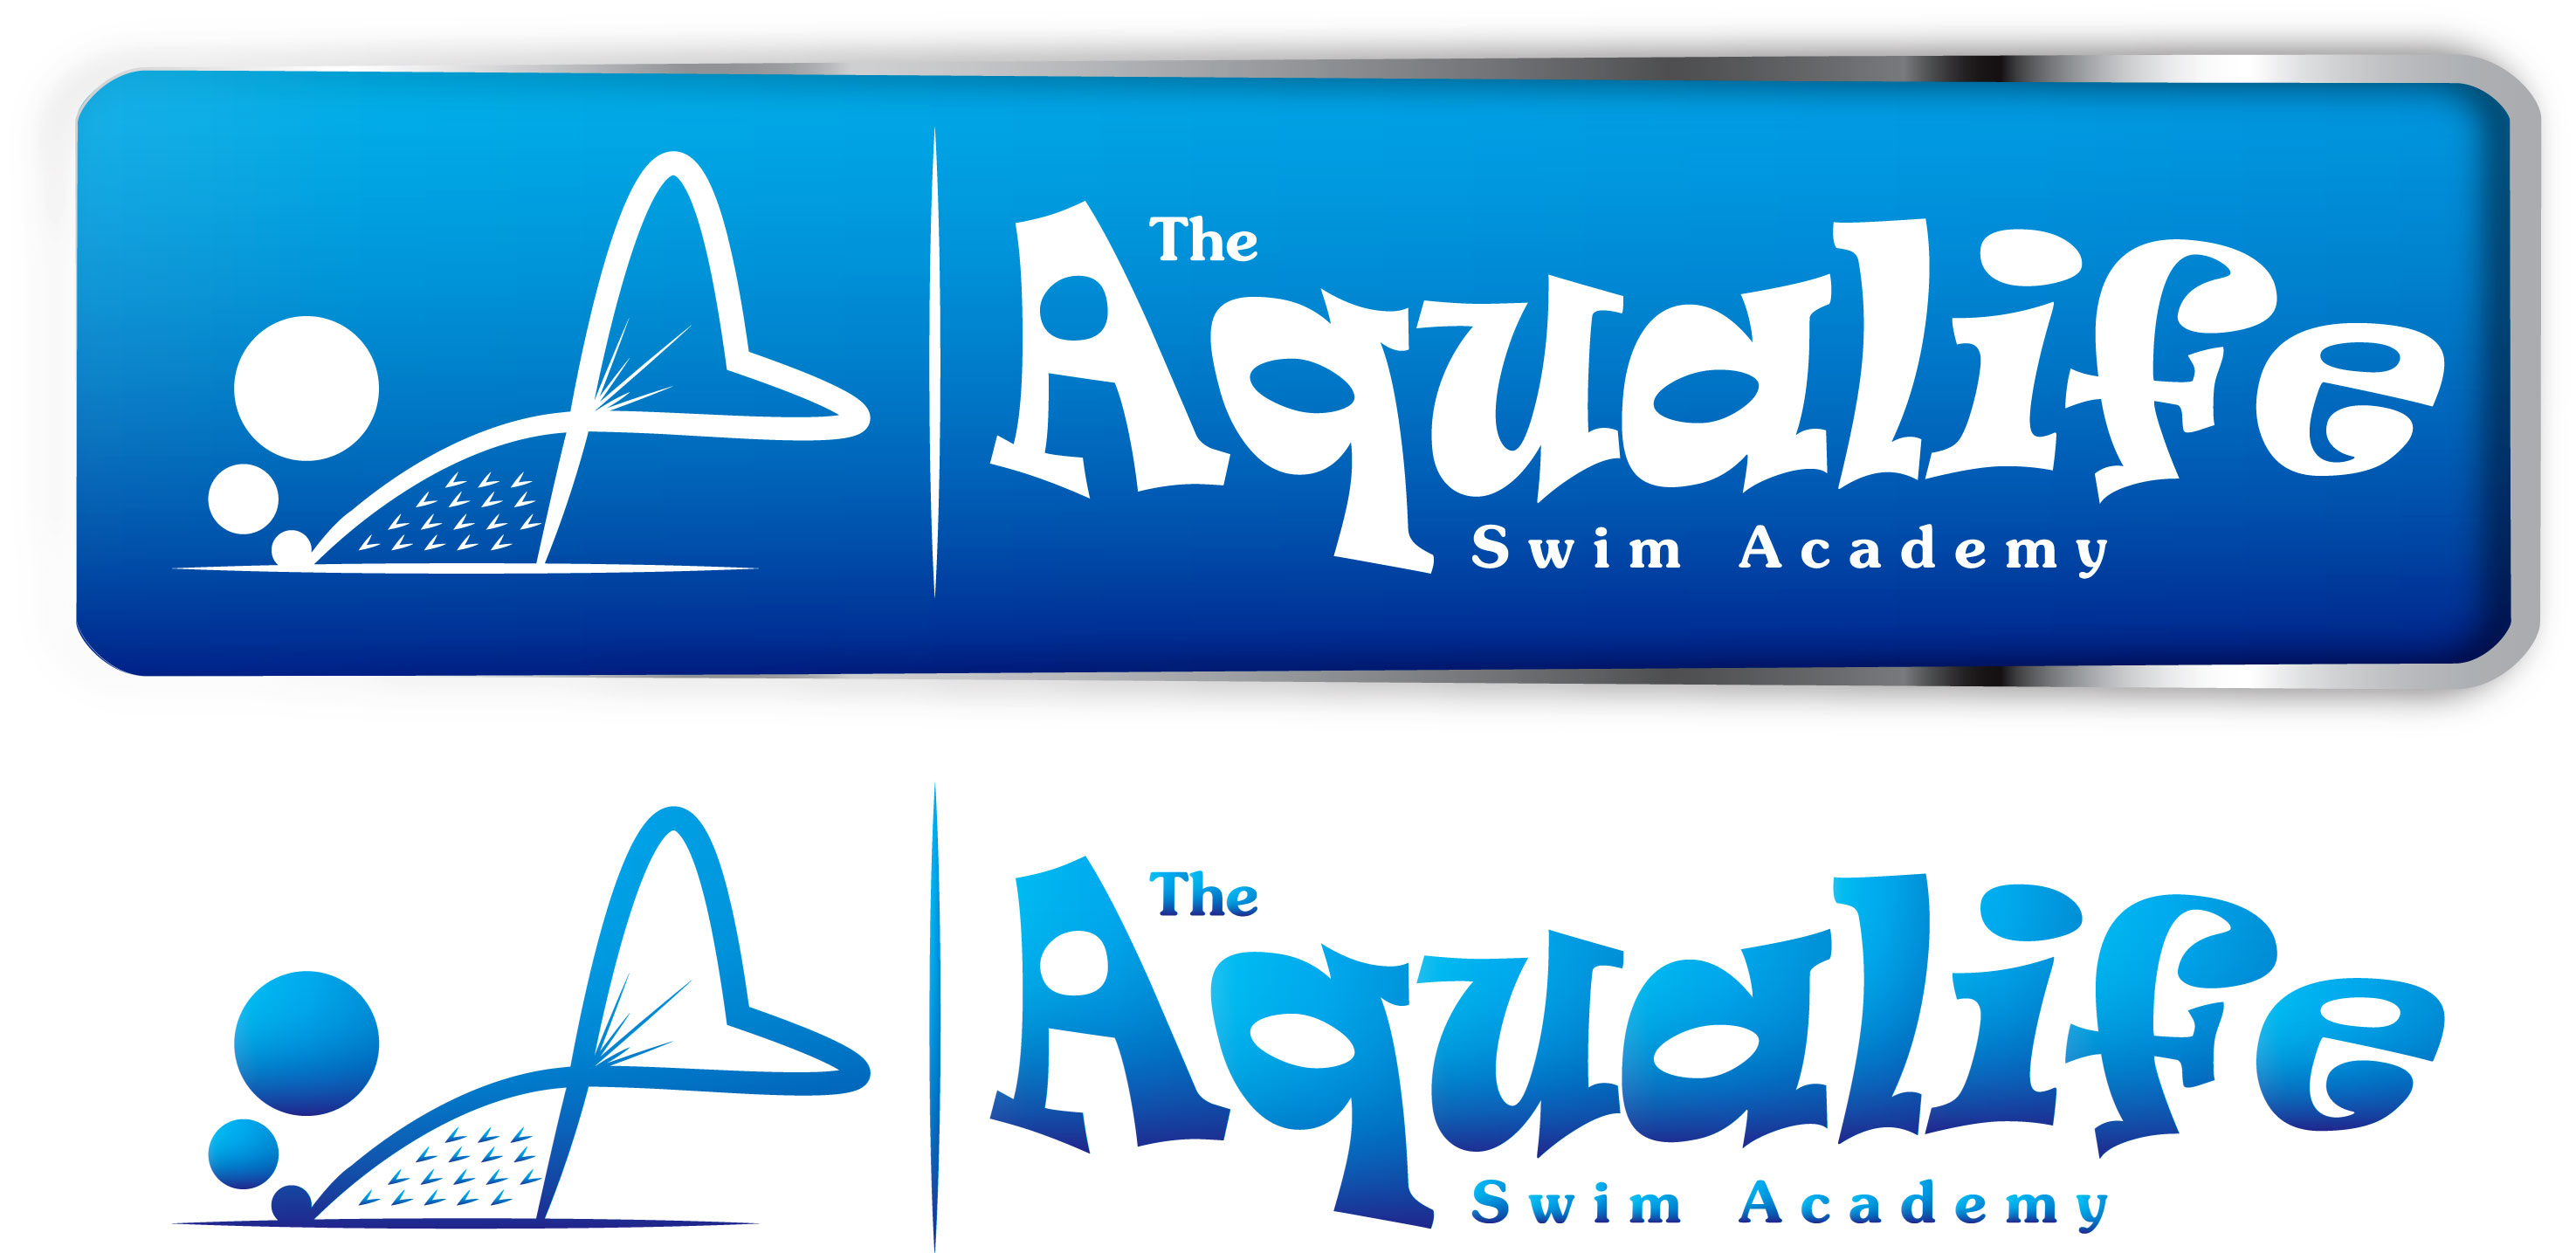 Logo Design by Dit Pambudi - Entry No. 77 in the Logo Design Contest Artistic Logo Design Wanted for The Aqua Life Swim Academy.